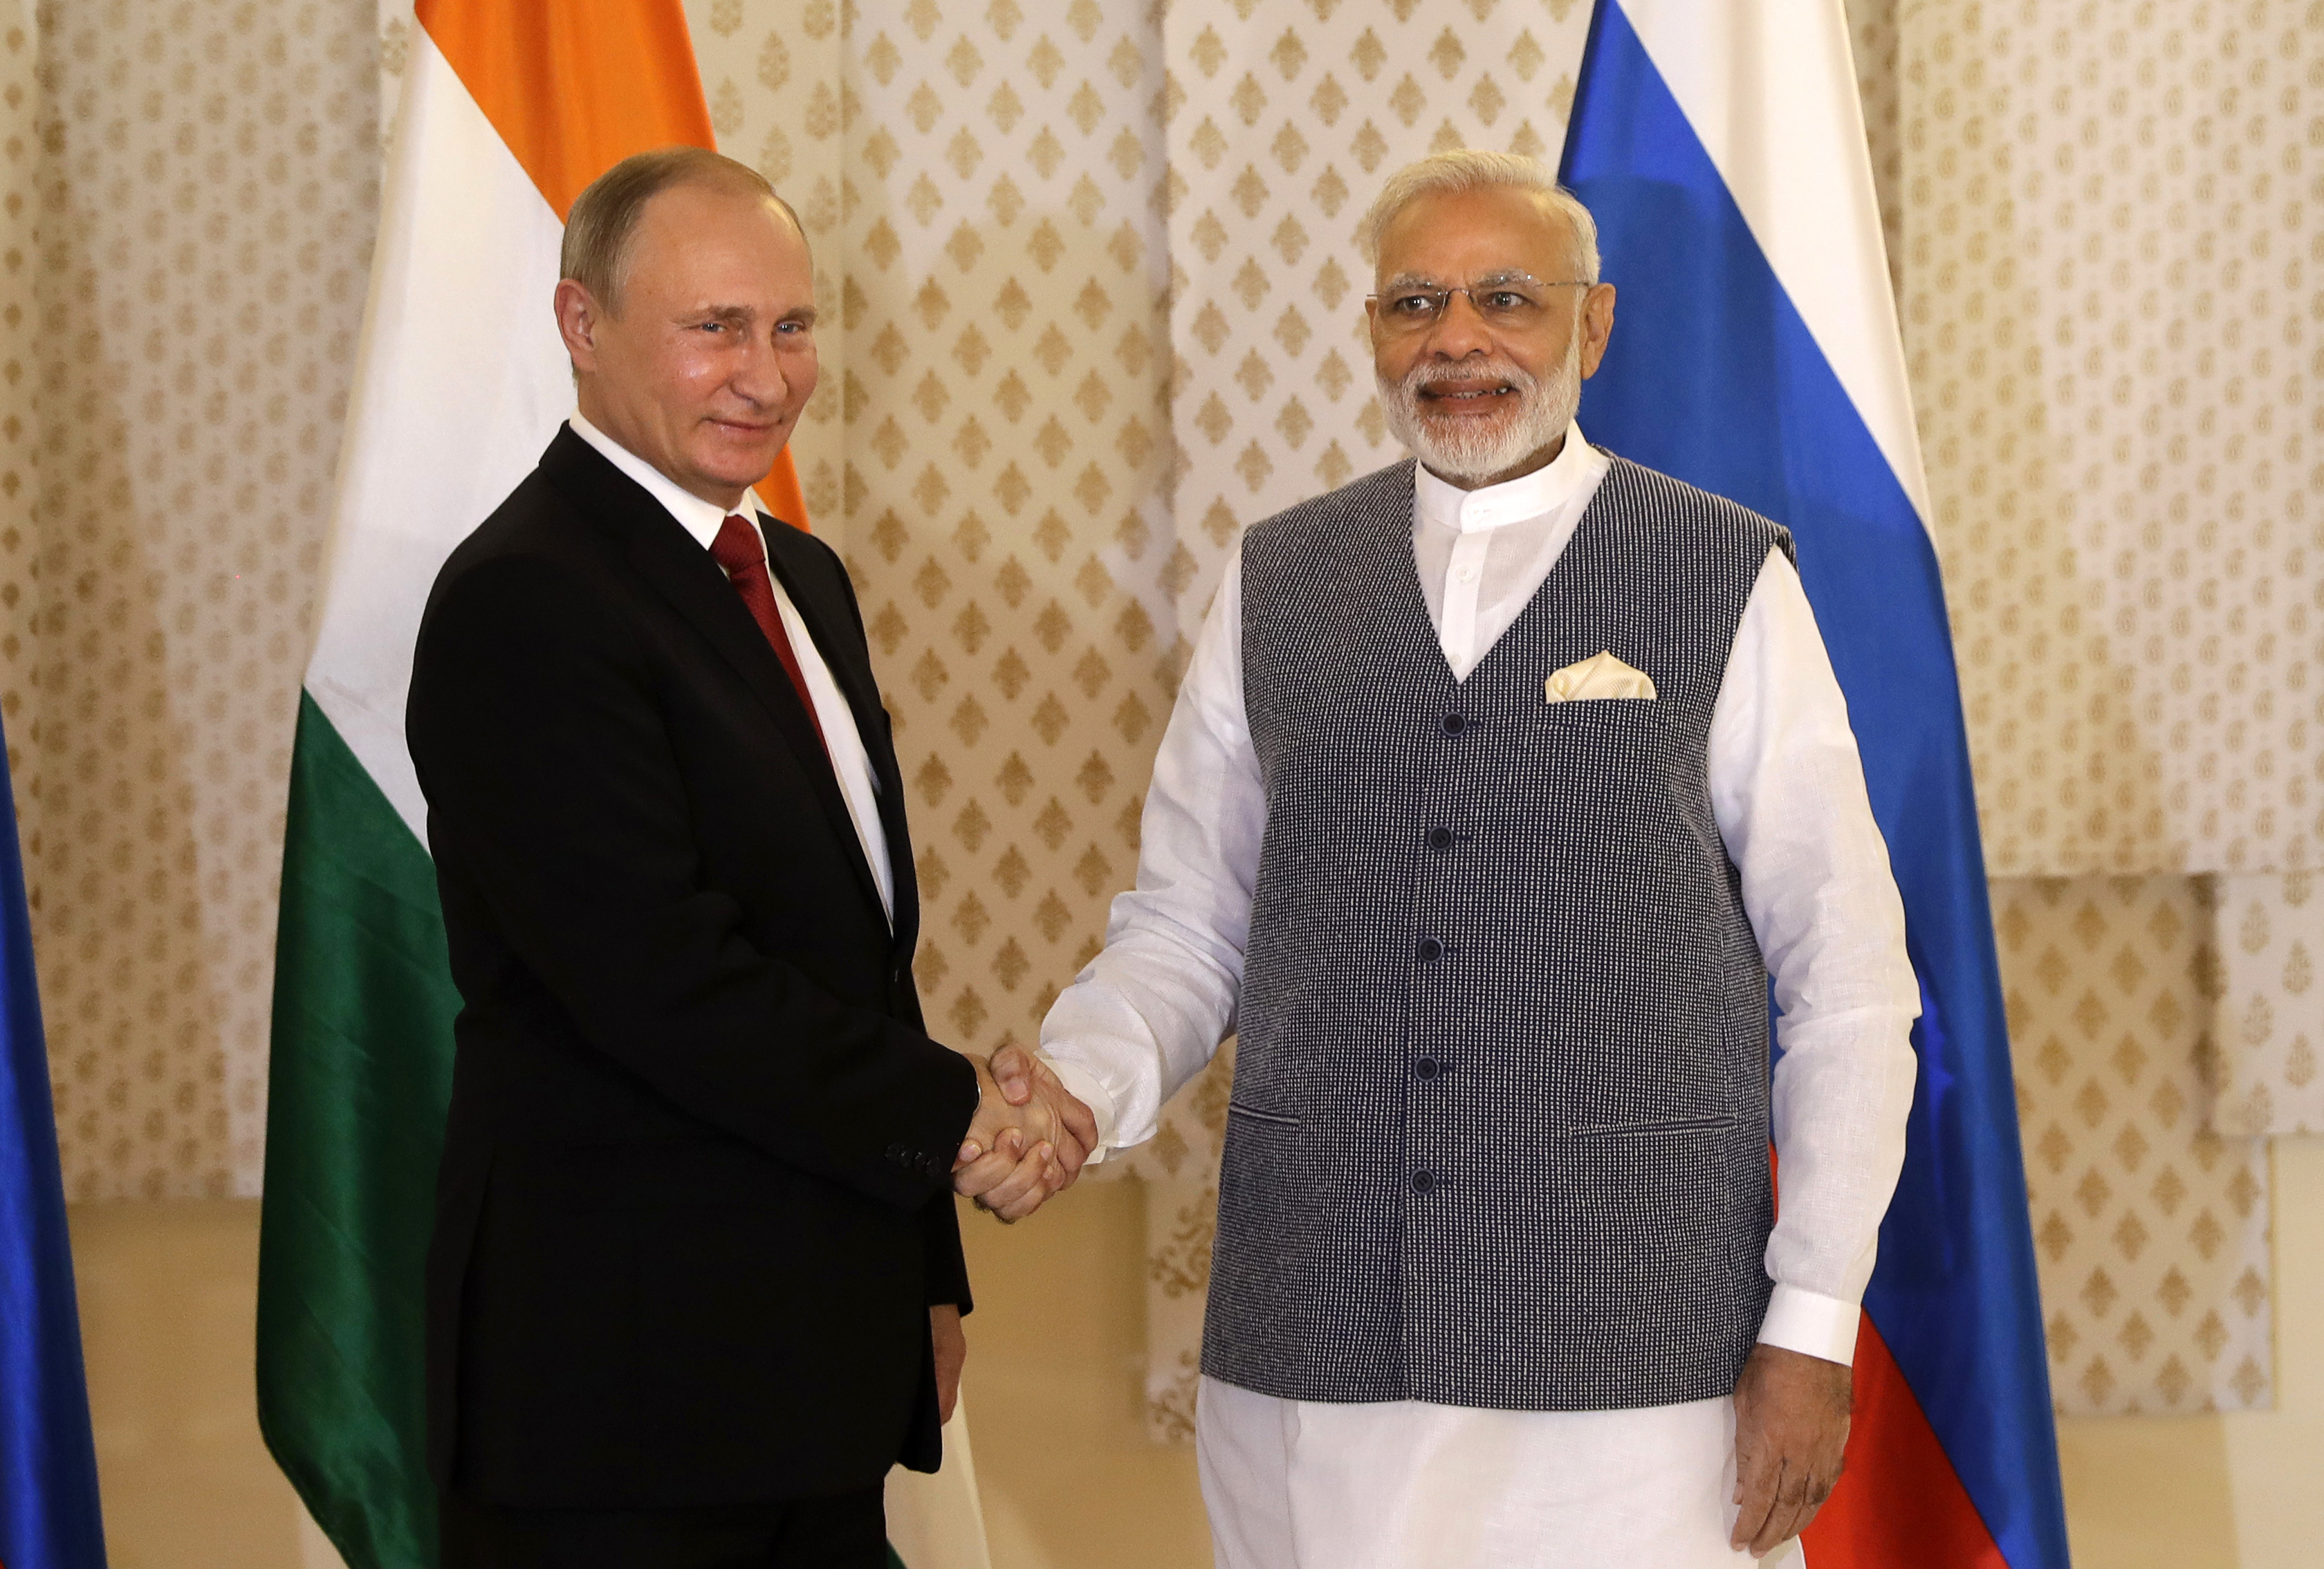 Indian Prime Minister Narendra Modi (R) shakes hand with Russian President Vladimir Putin prior to their annual bilateral meeting, on the sidelines of the BRICS summit, where they are expected to discuss Syria and Afghanistan, in Goa, India, on Oct. 15, 2016. (AP Photo/Manish Swarup)